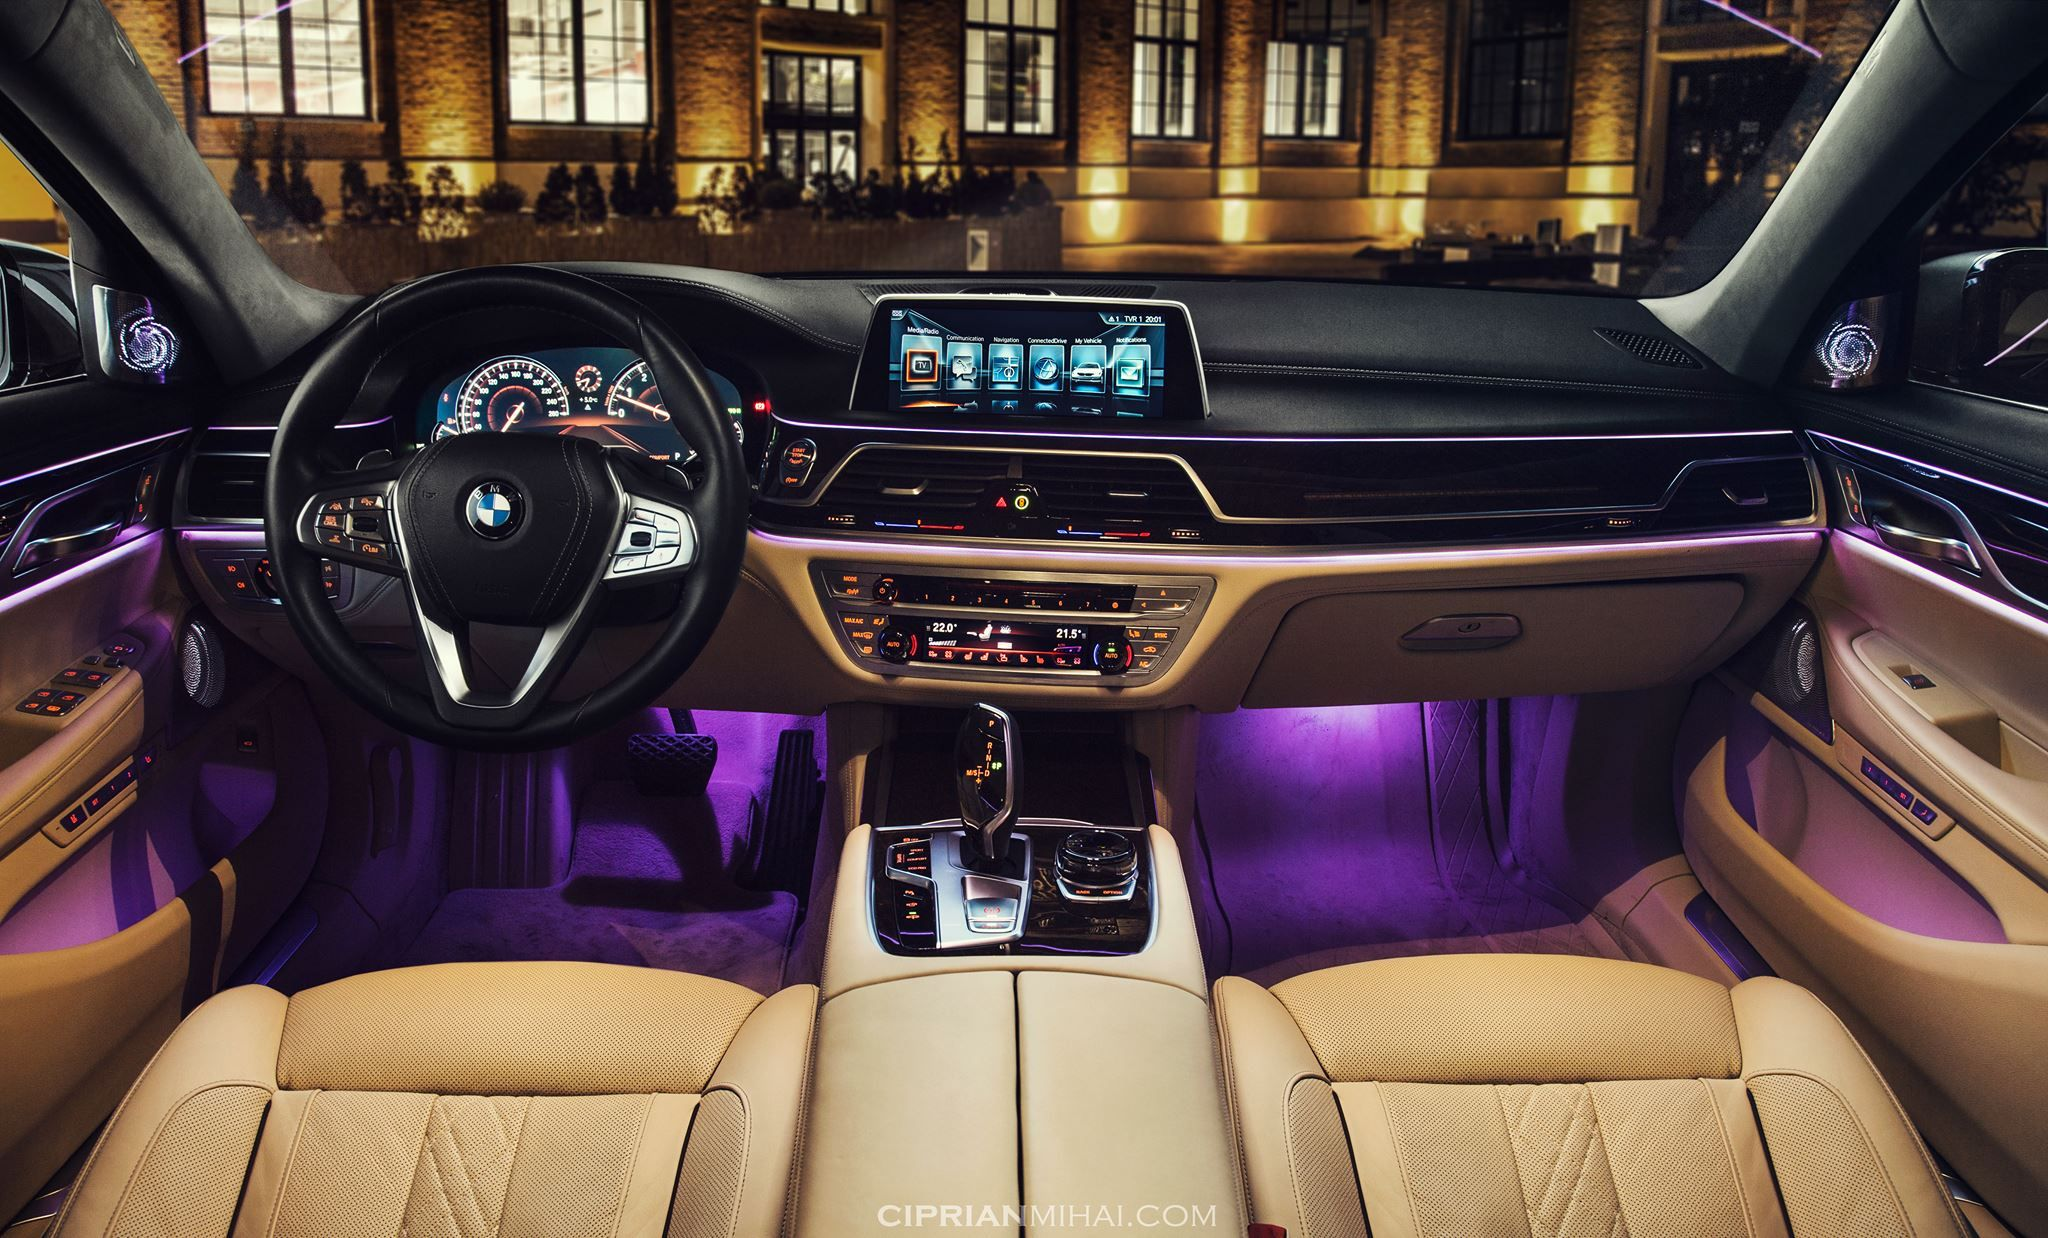 Bmw G12 750li Xdrive Night Luxury Strong Fast Future Technology Light Ship Live Life Love Follow Your Heart Bmwlifem